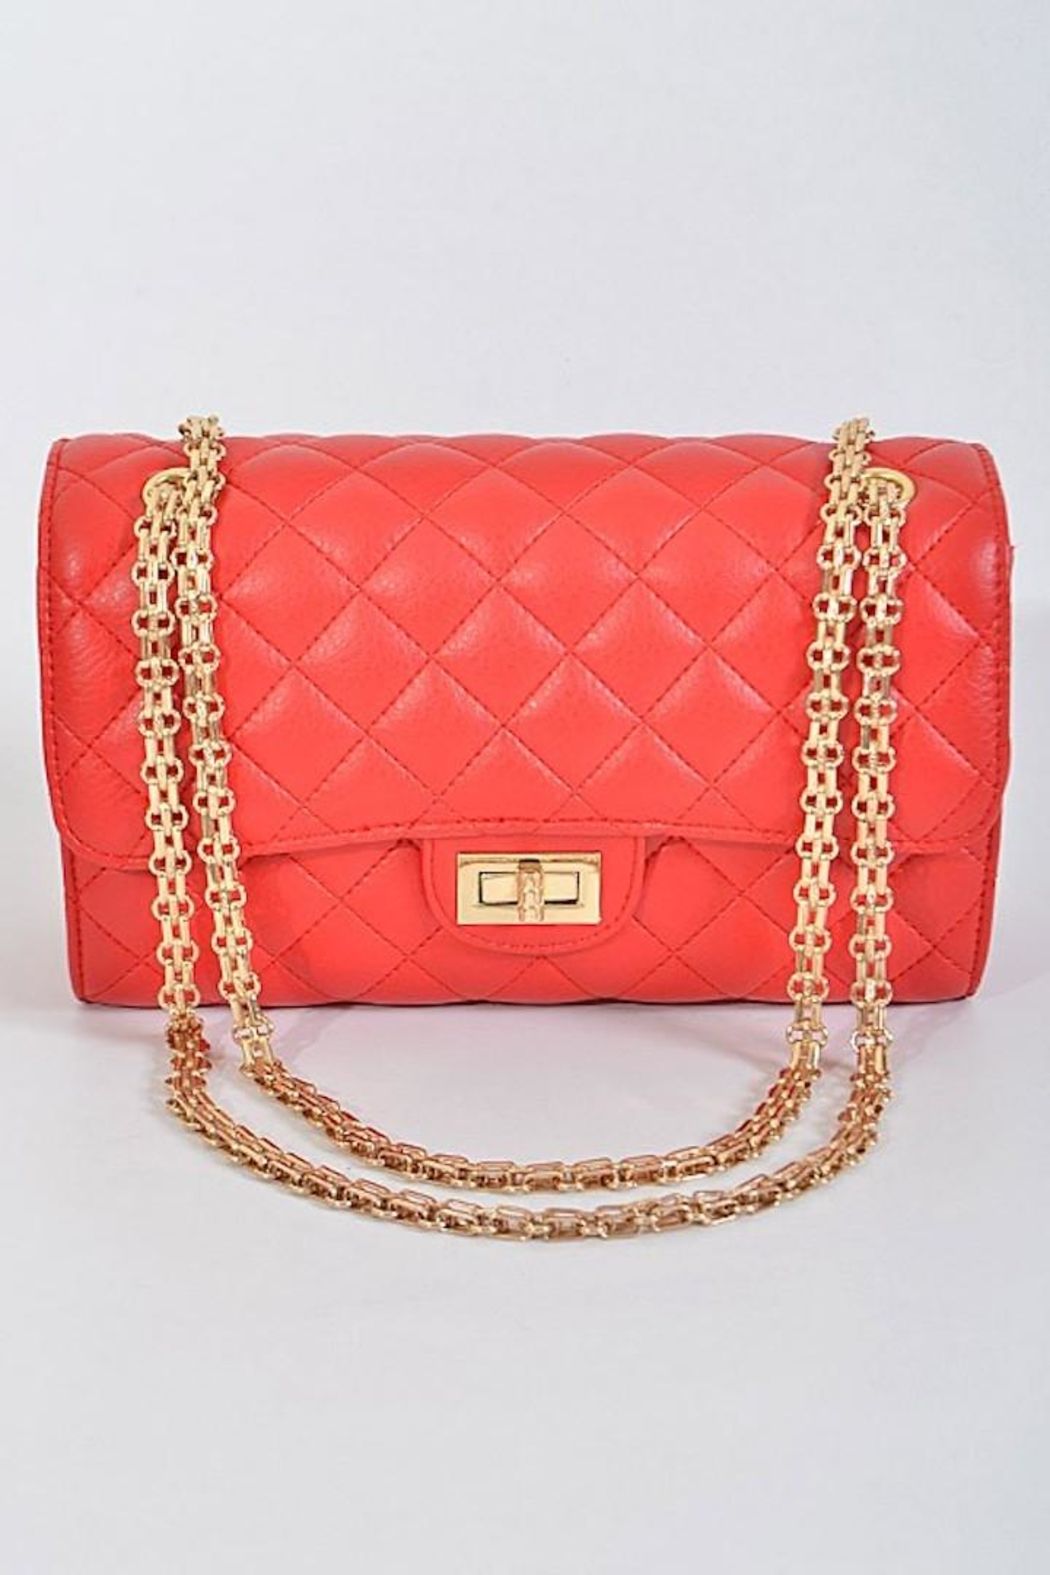 N A Quilted Flap Bag From Fredericksburg By Cose Belle Boutique bf82f142f078e